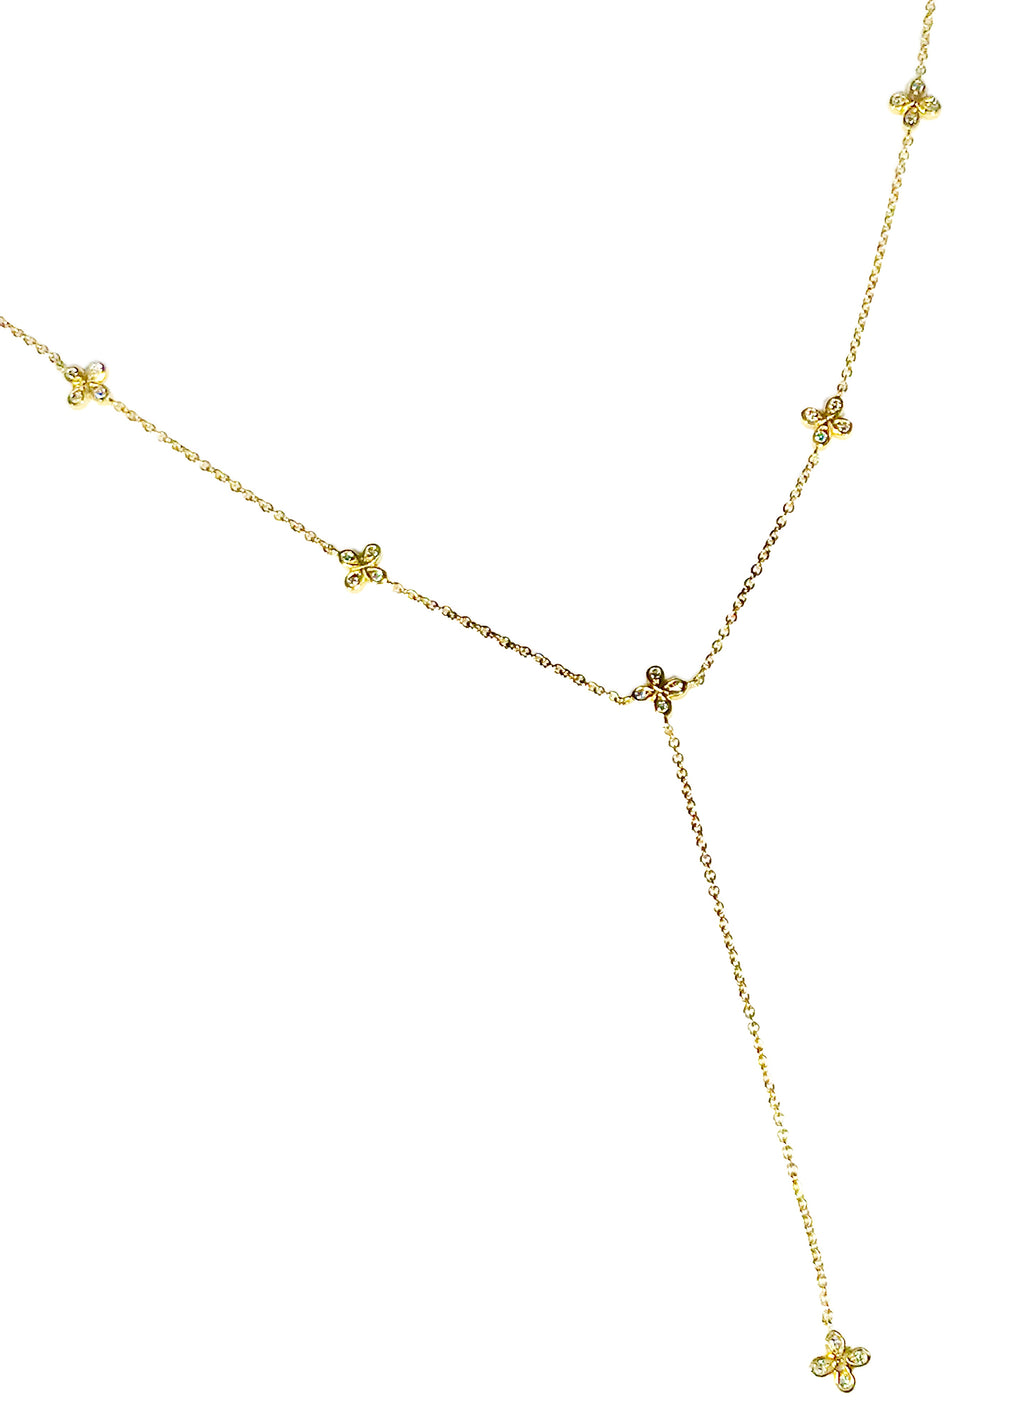 Adjustable 18k Diamond Lariat Necklace